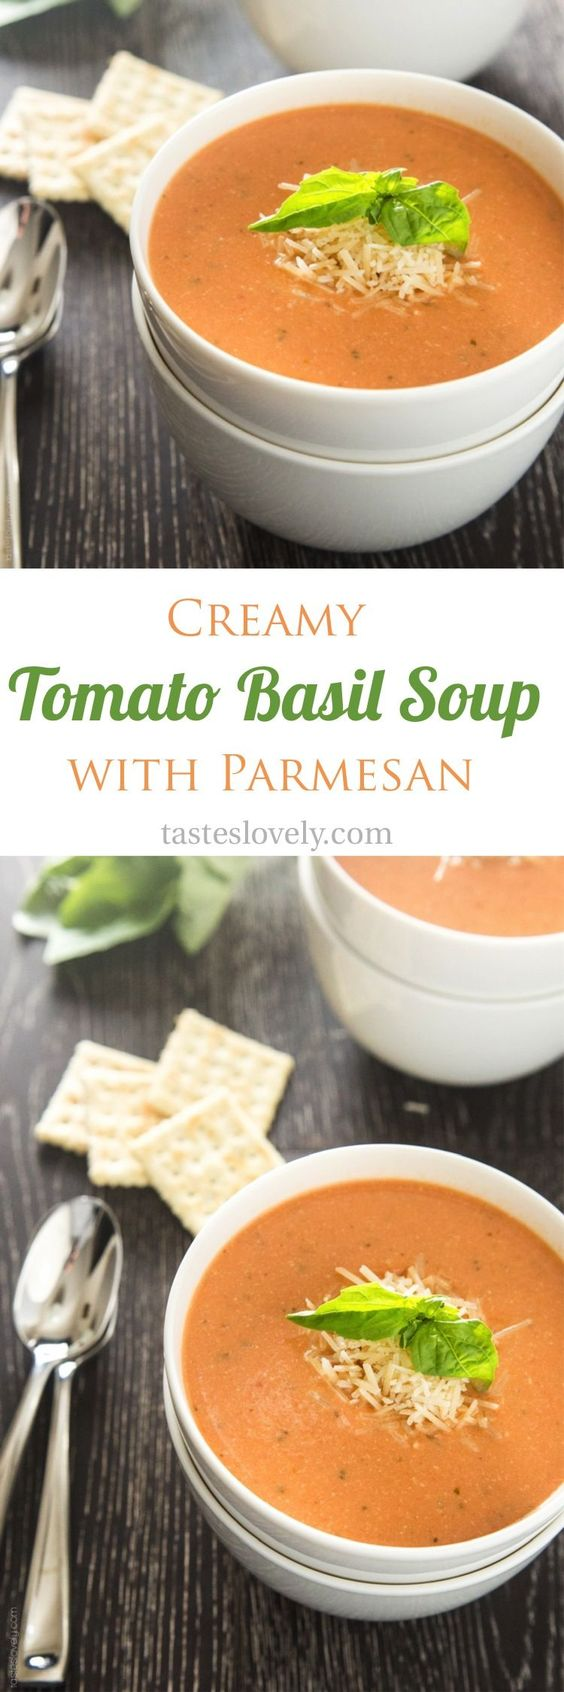 Creamy tomato basil soup with parmesan cheese - the BEST tomato soup I ...